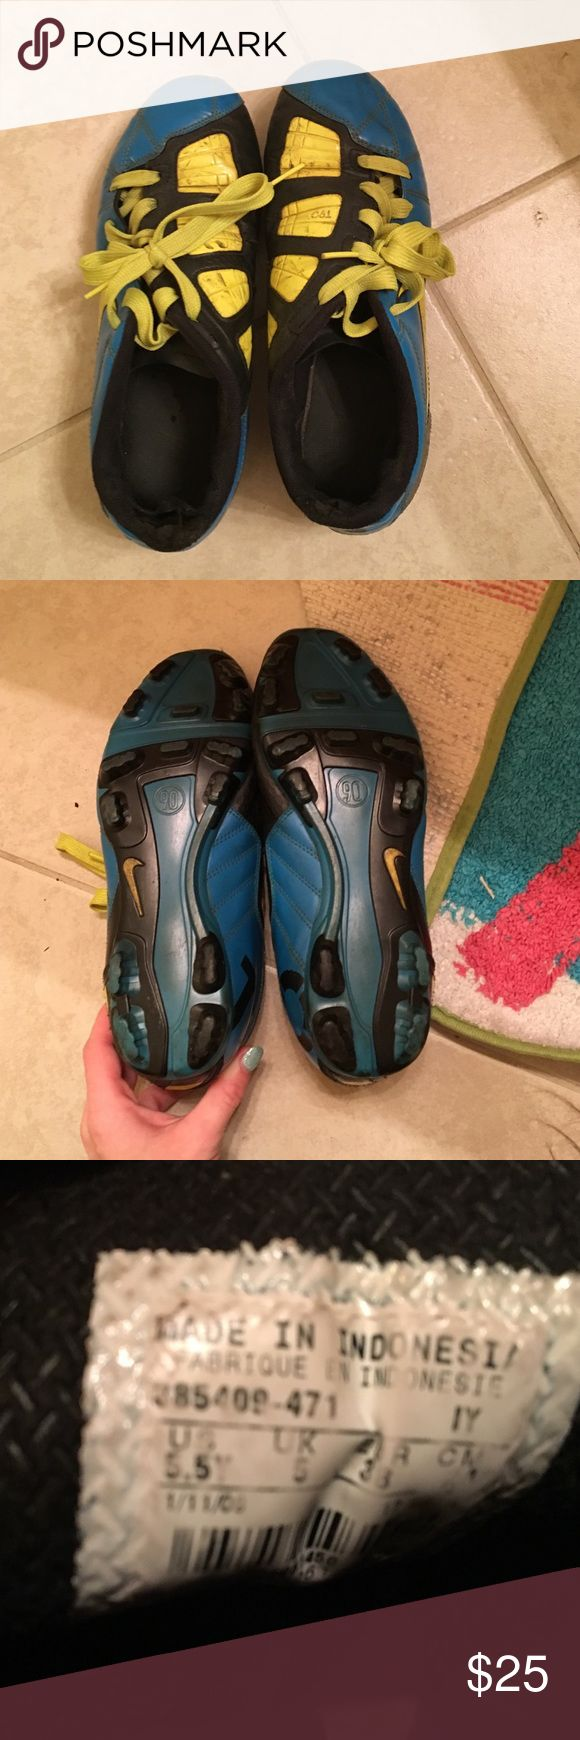 Soccer cleats size 5.5 Youth Nike cleats T90 blue and yellow, different laces that are better than ones that came with it wore a lot but still in good condition to play no holes, on left foot the back has a rip on the inside of fabric but doesn't affect shoe at all, right shoe on inside where big toe fits is worn down. All in all great cleats for kids Nike Shoes Athletic Shoes